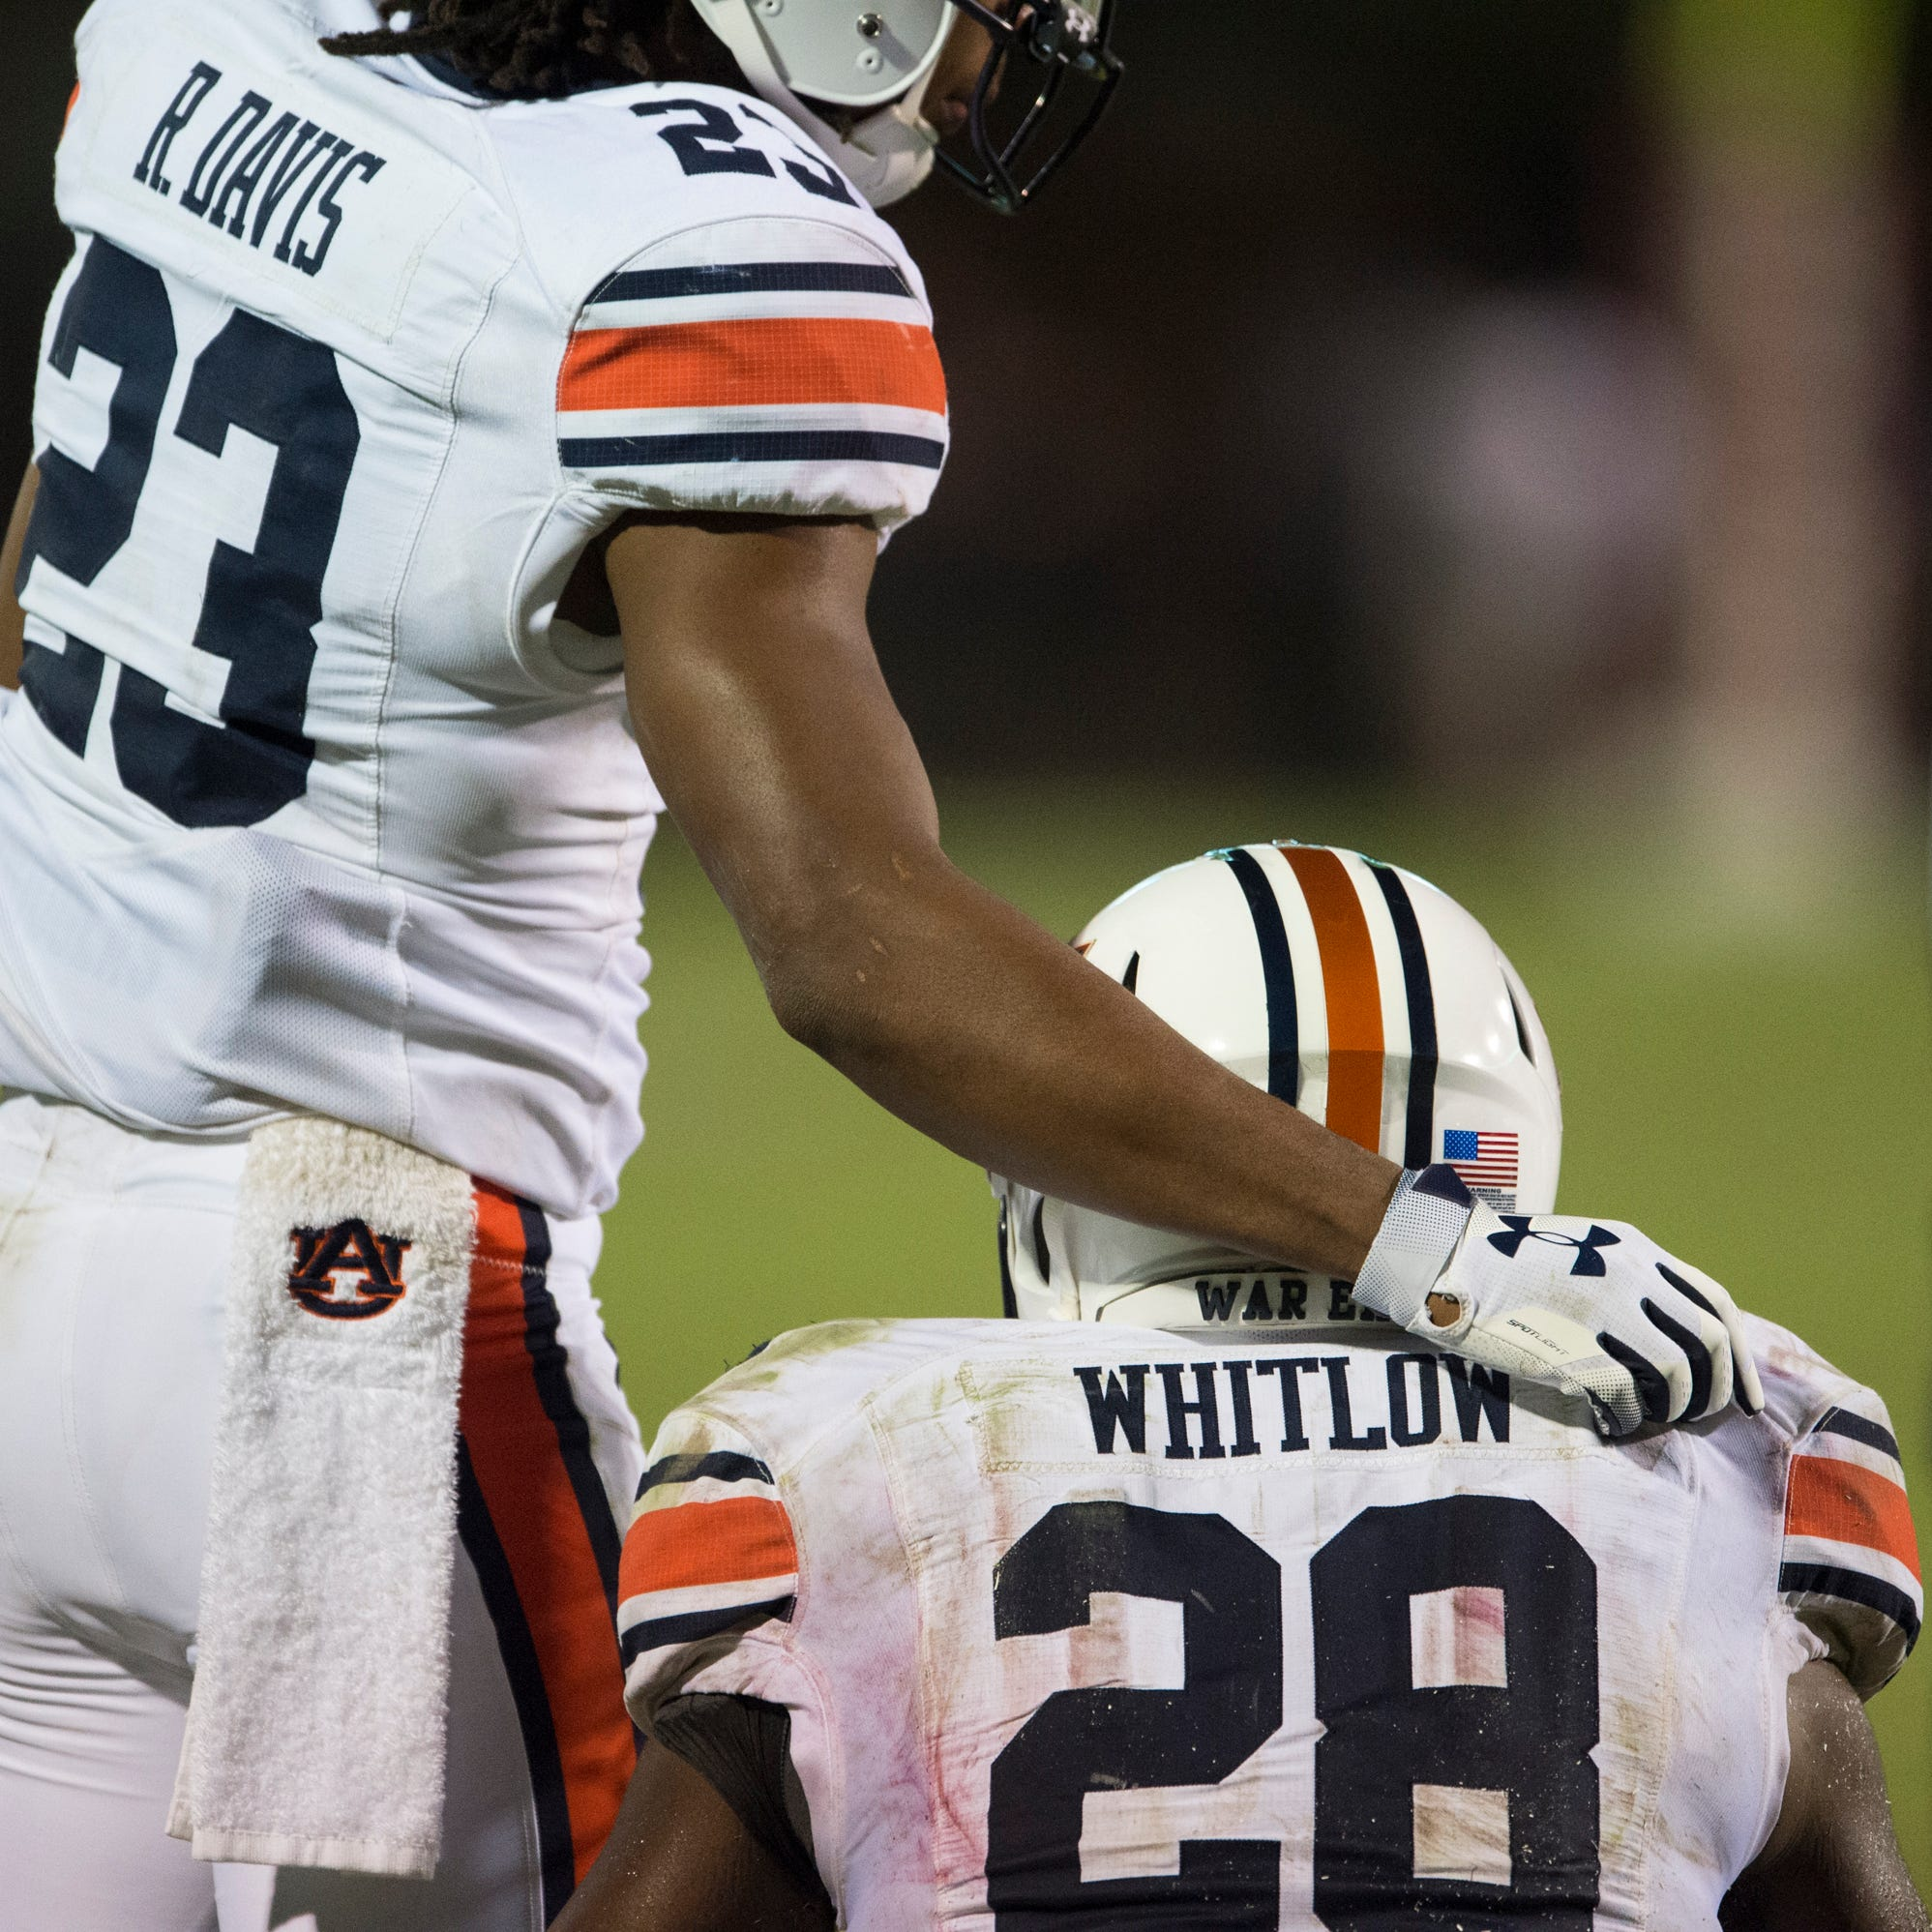 Bell tolls on Auburn's hopes and dreams with major setback in Starkville